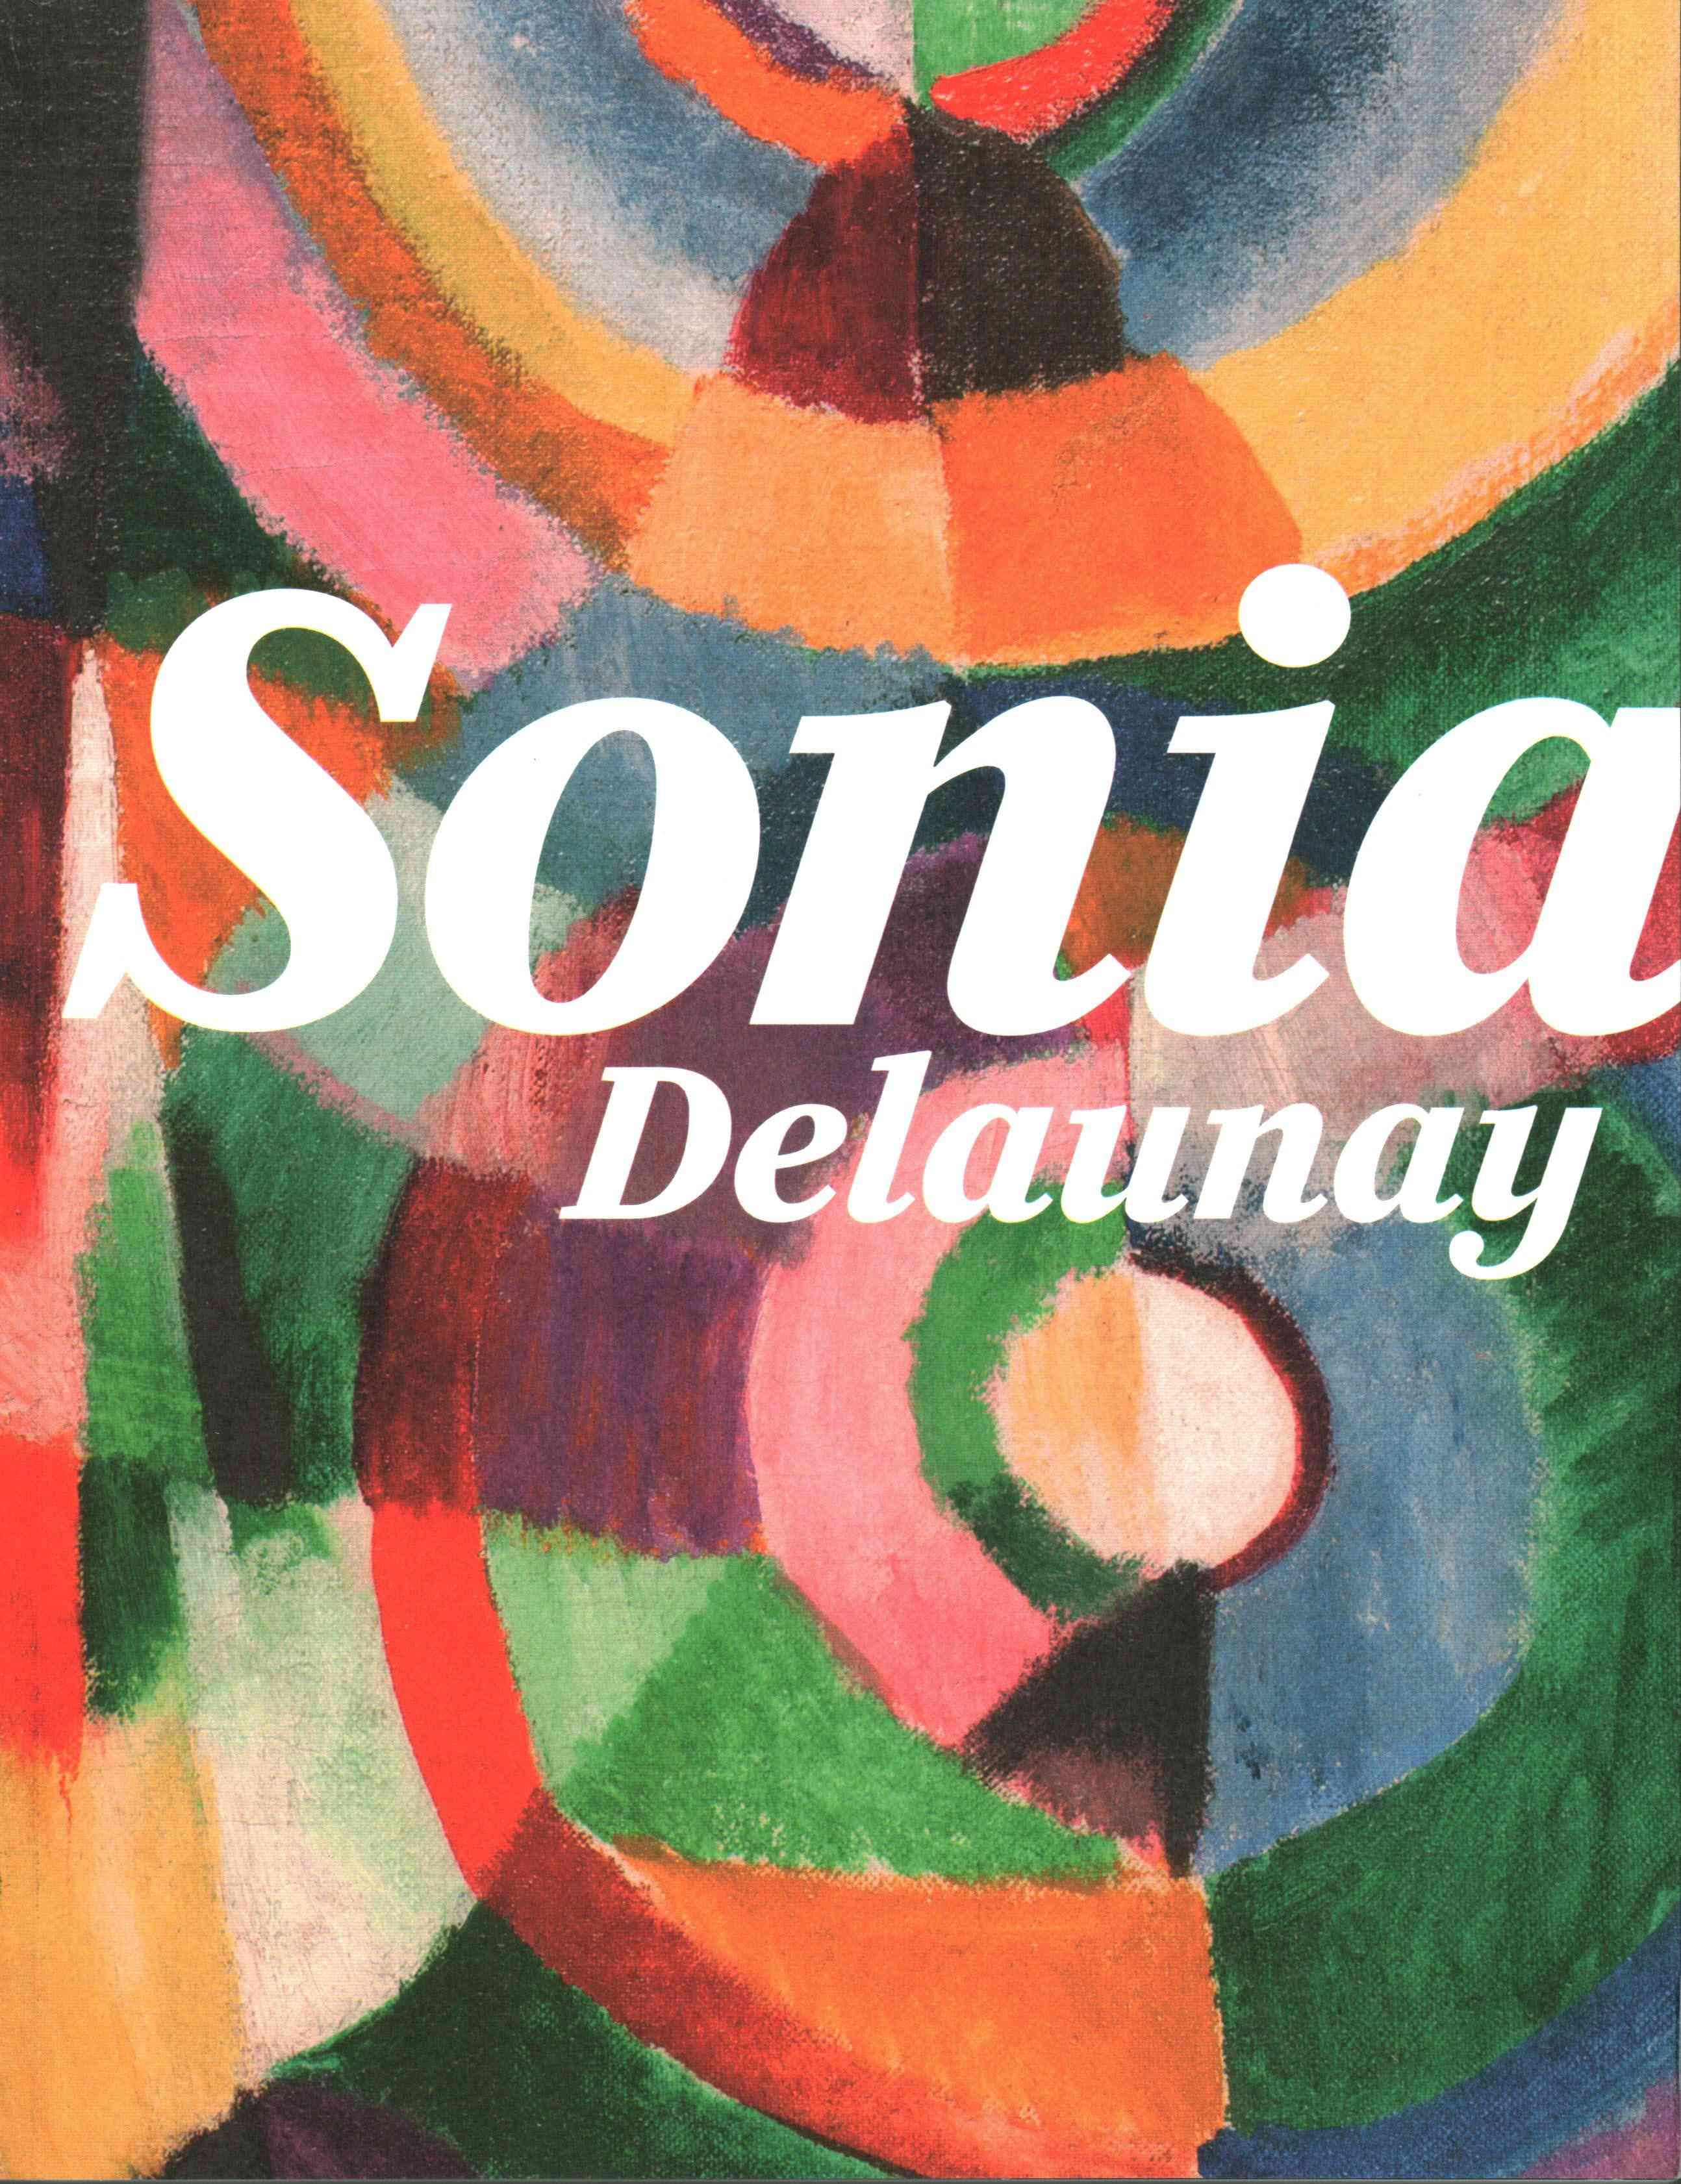 Sonia Delaunay (18851979) was one of the most important and fundamental artists of the early 20th-century Parisian avant-garde. With over 250 illustrations and groundbreaking essays, the book illustra